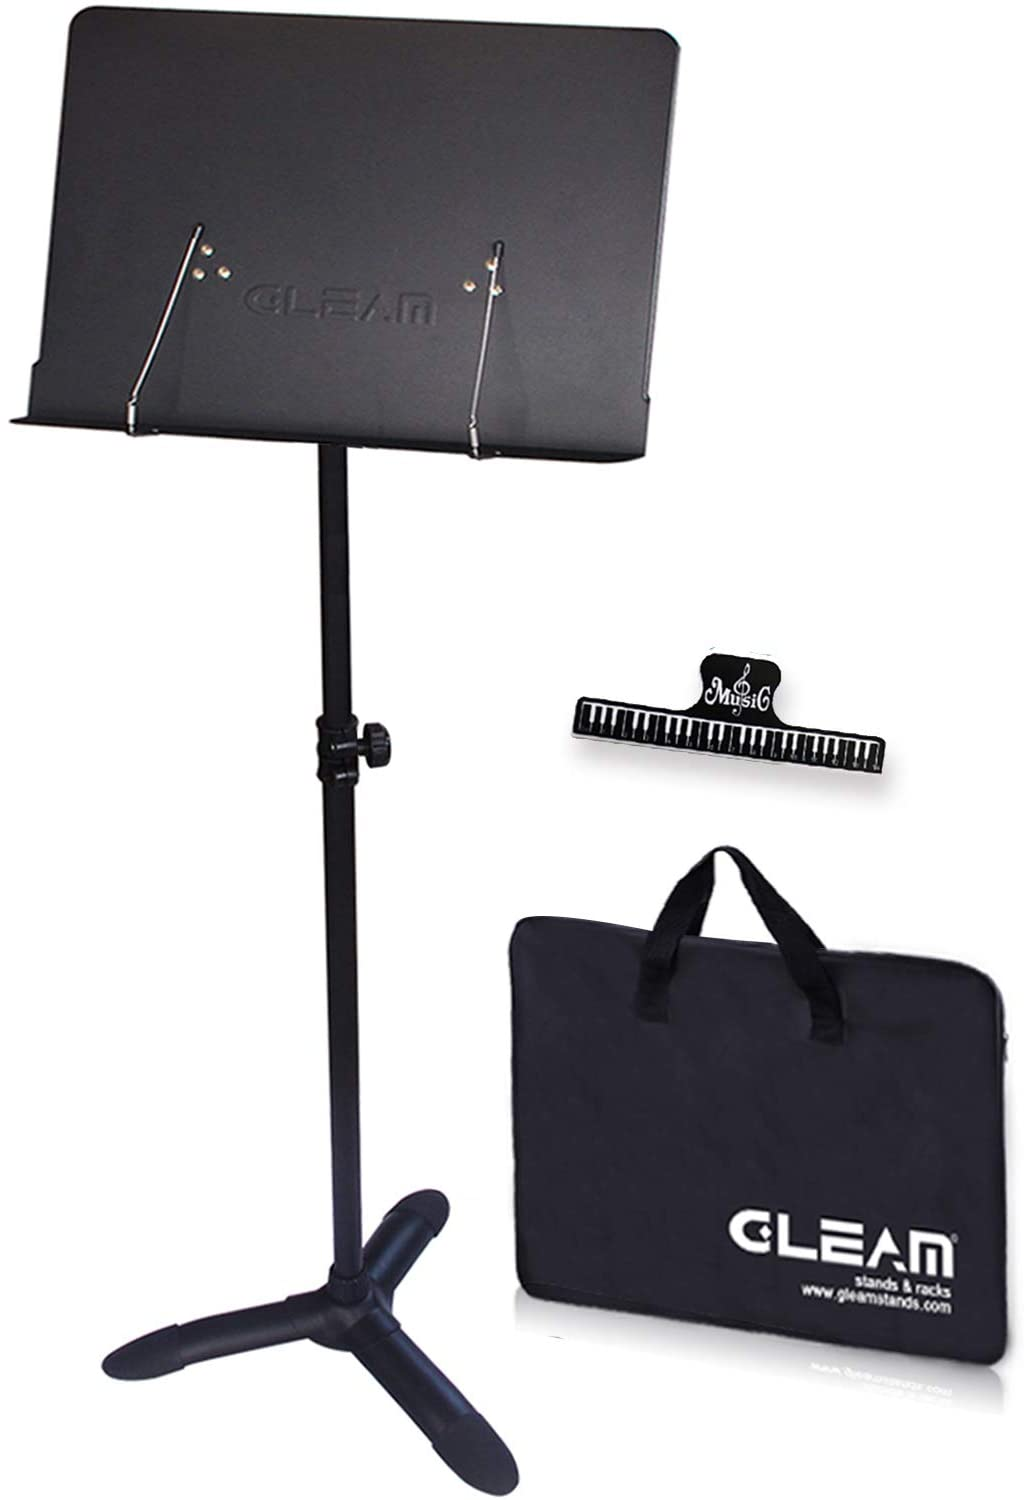 GLEAM Sheet Music Stand with Carrying Bag and Clip Holder - Metal Black